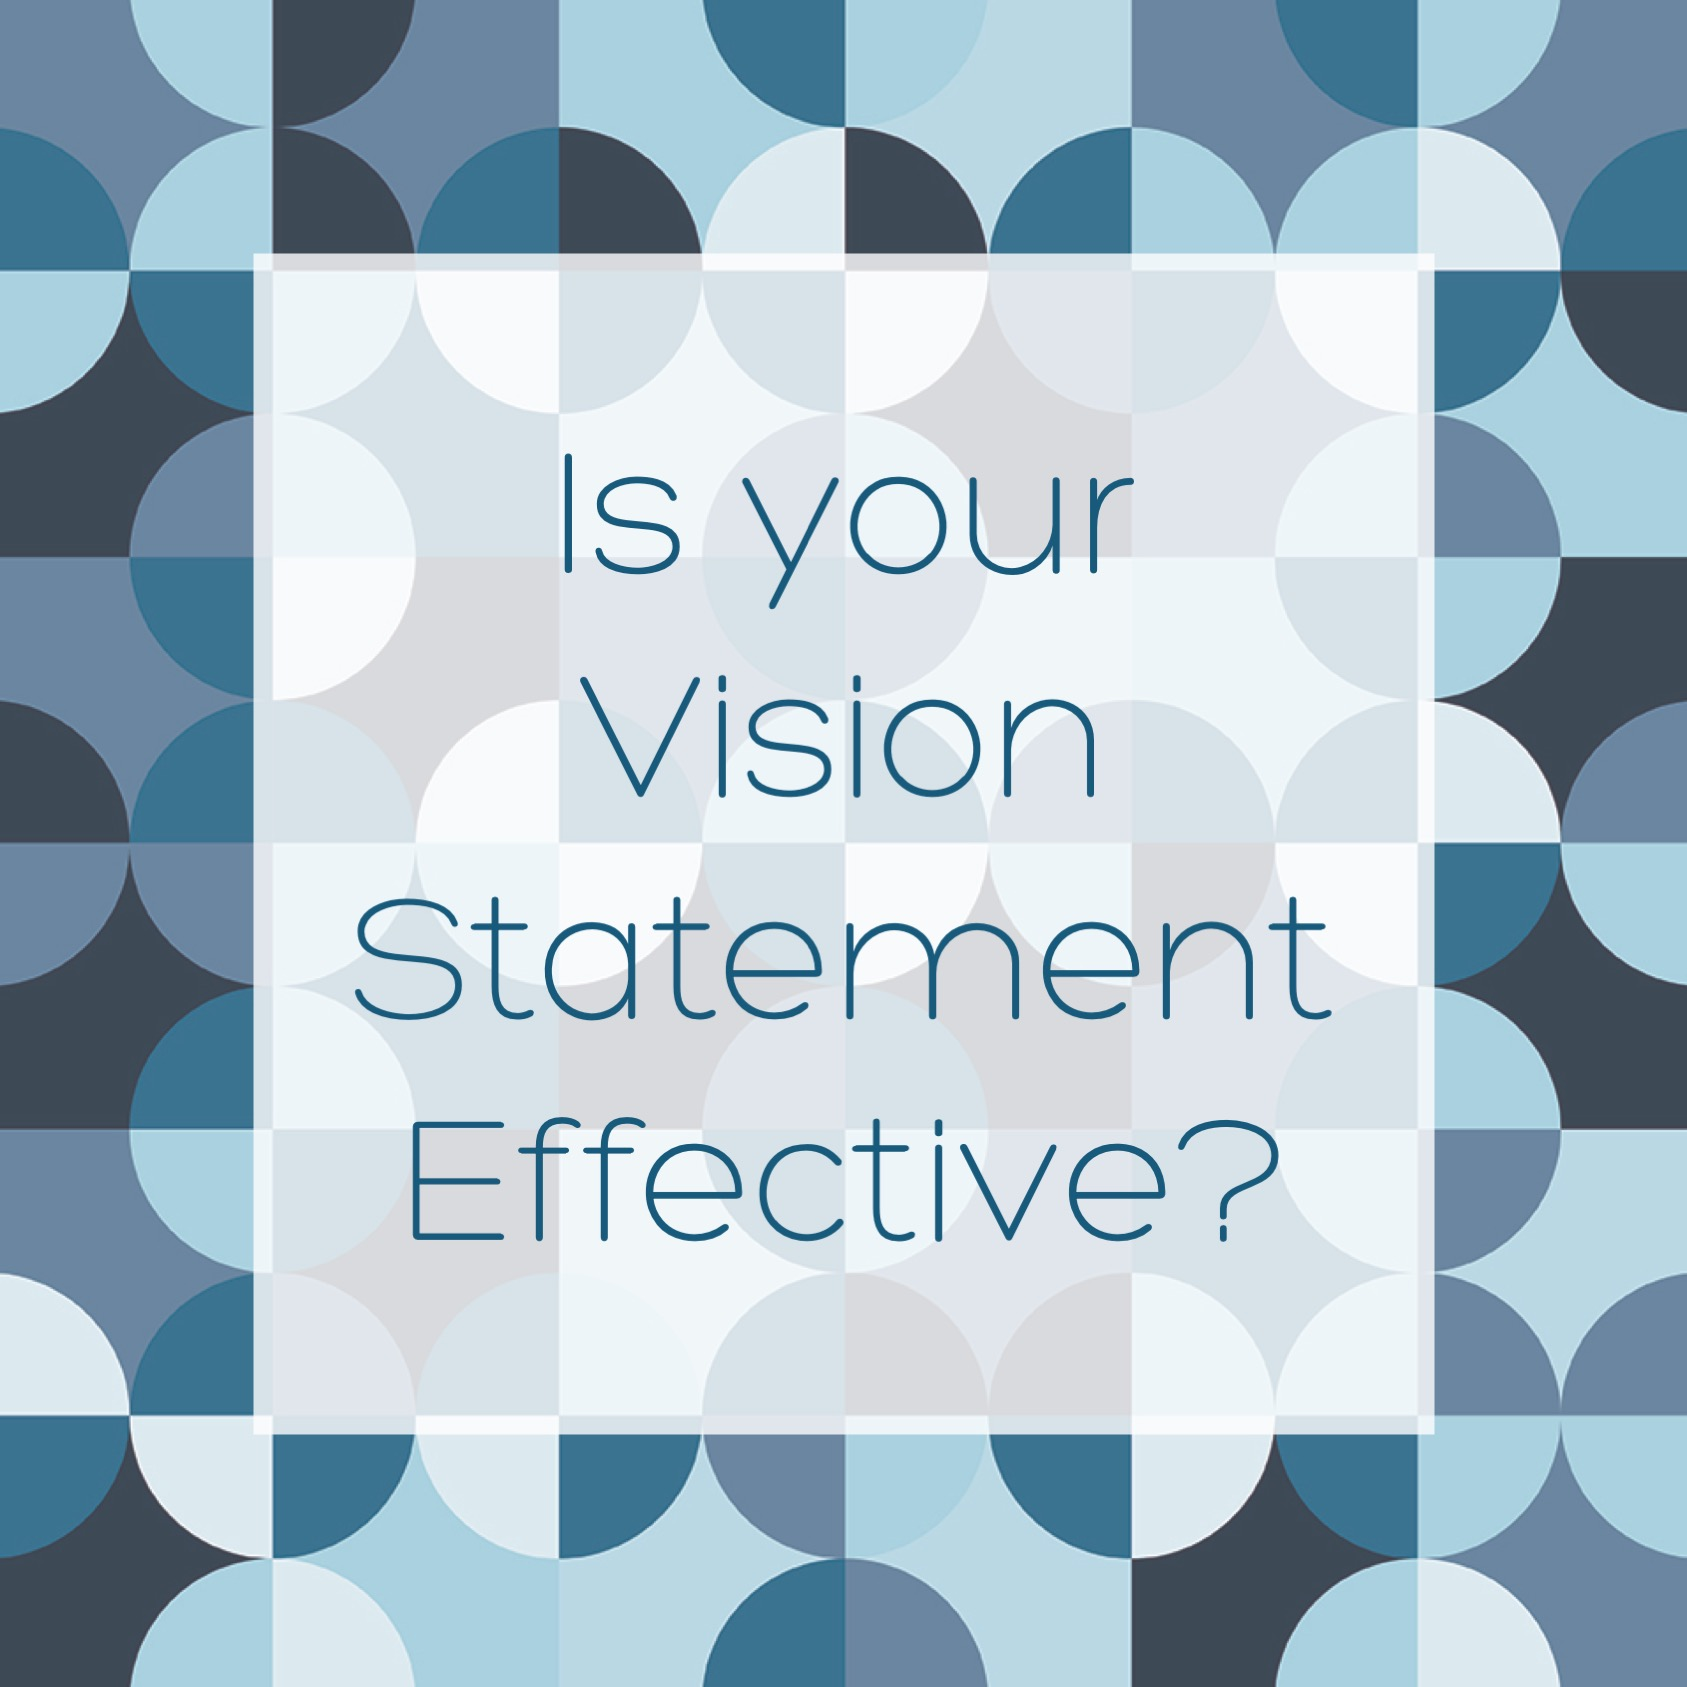 Is Your Vision Statement Effective?